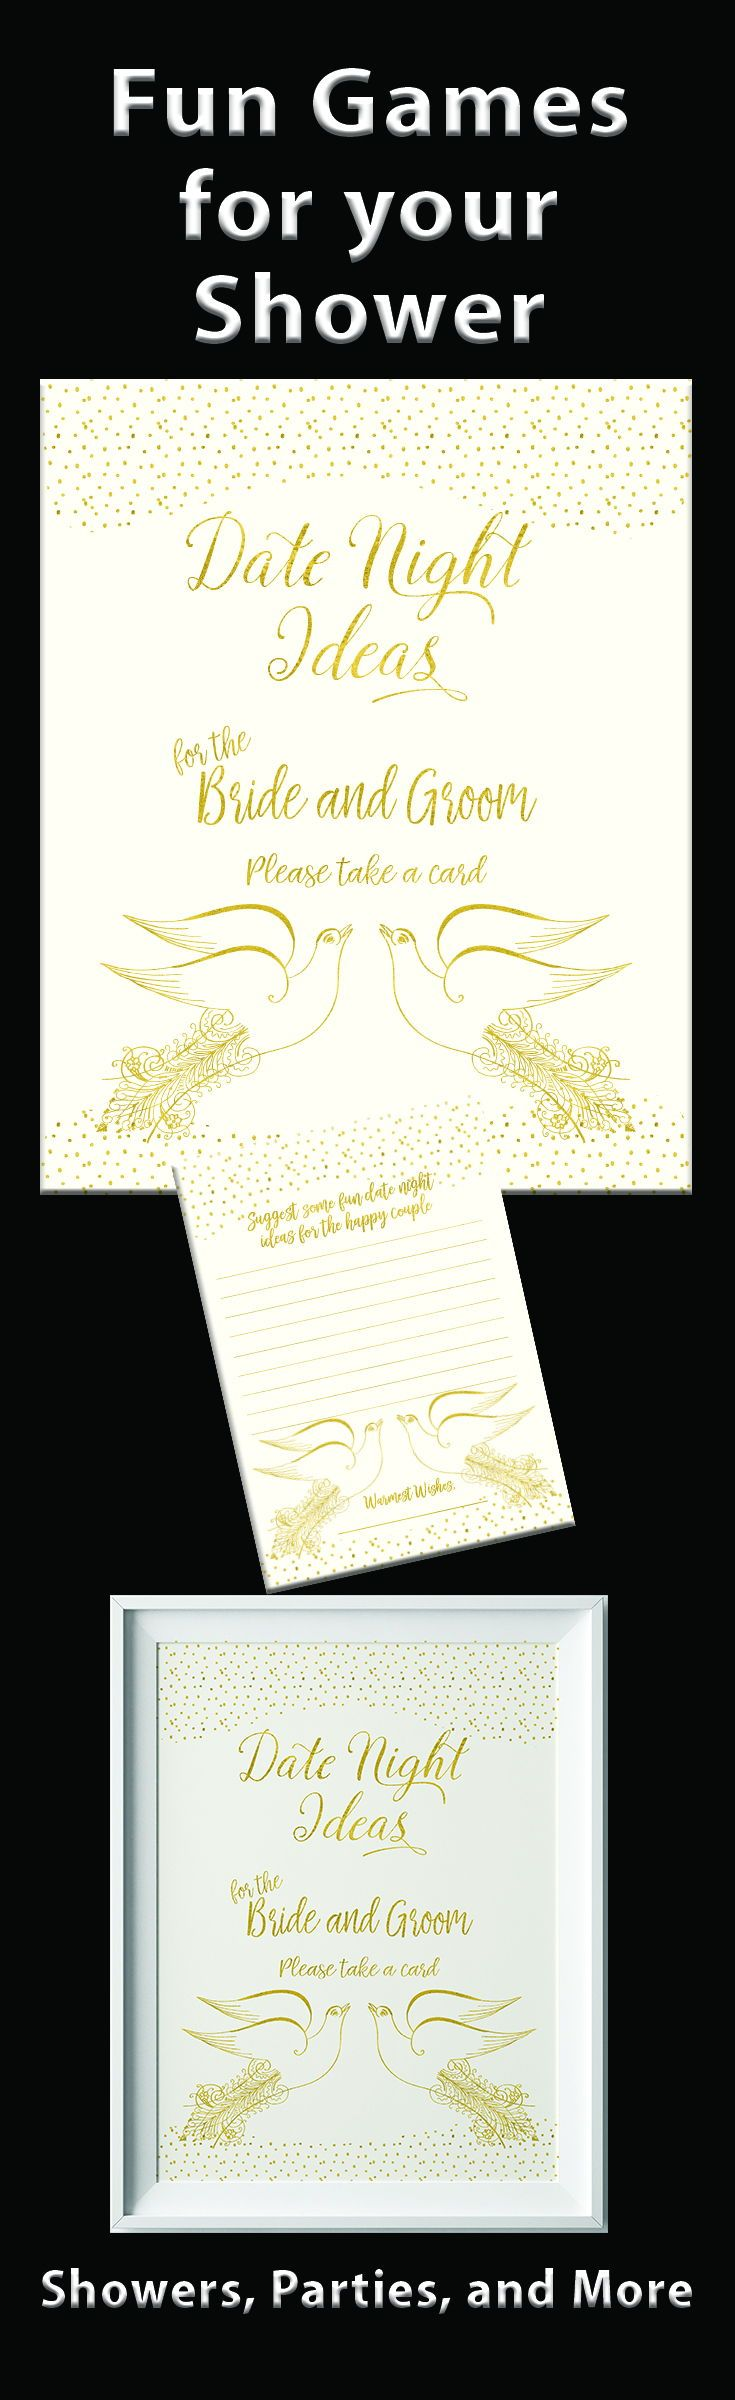 games to play at couples wedding shower%0A Date Night Ideas with vintage love birds  Printable gold sitting on a cream  background